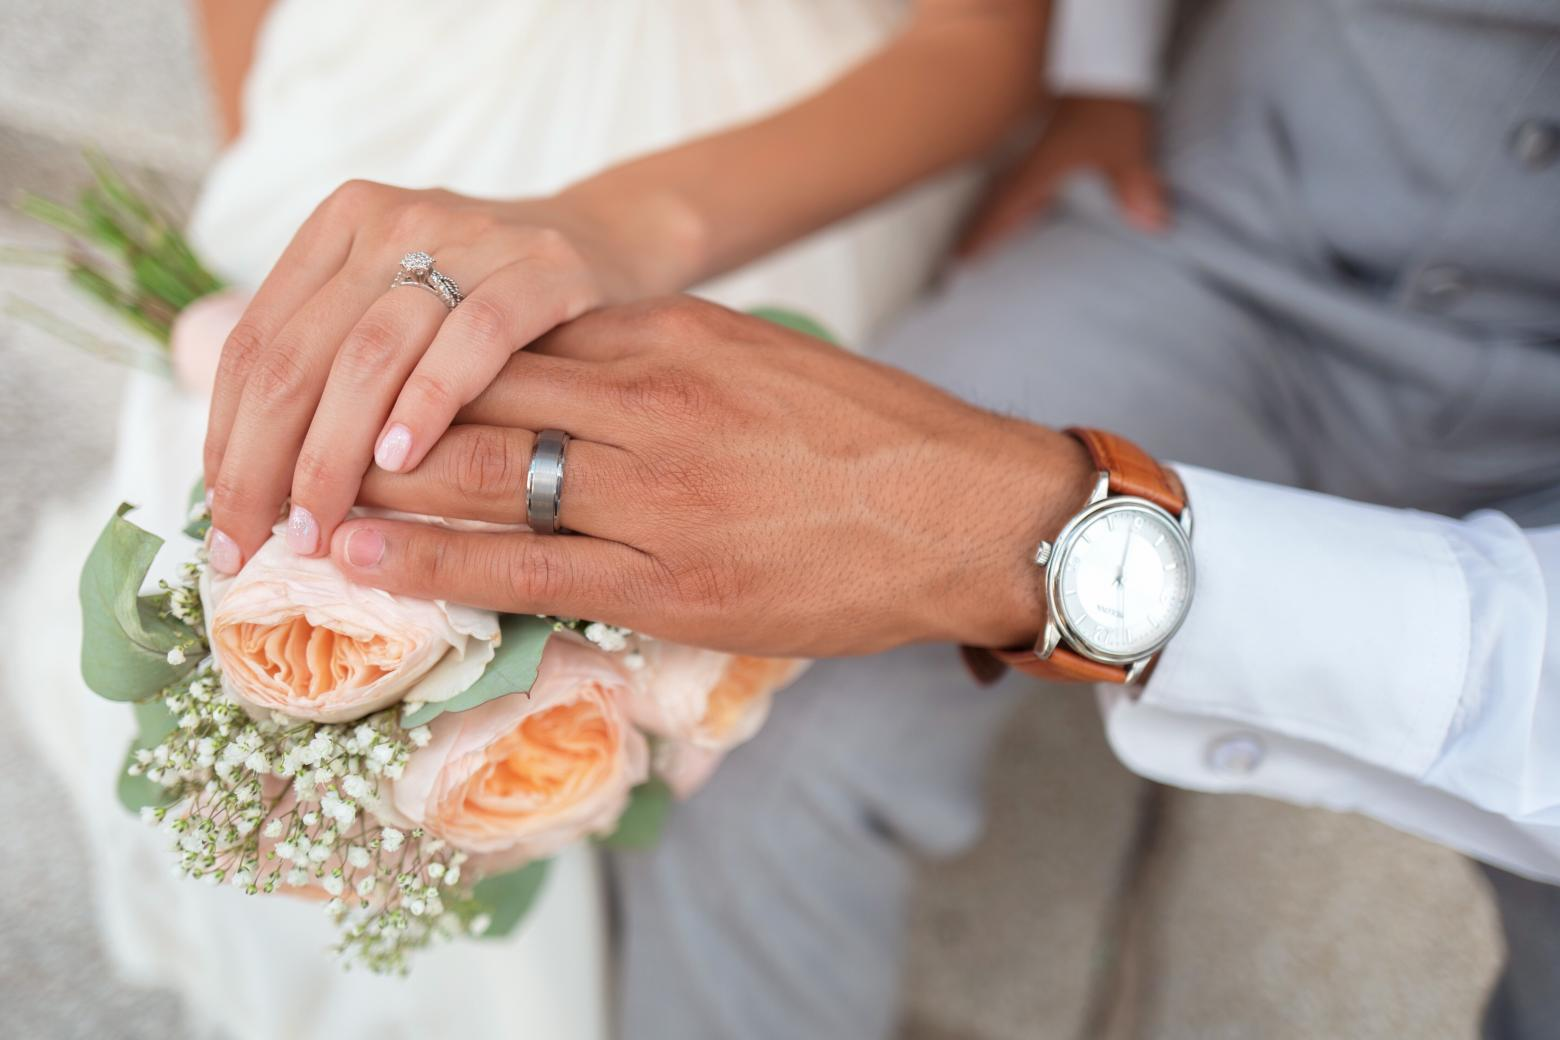 14 Best Wedding Watches for the Bride and Groom